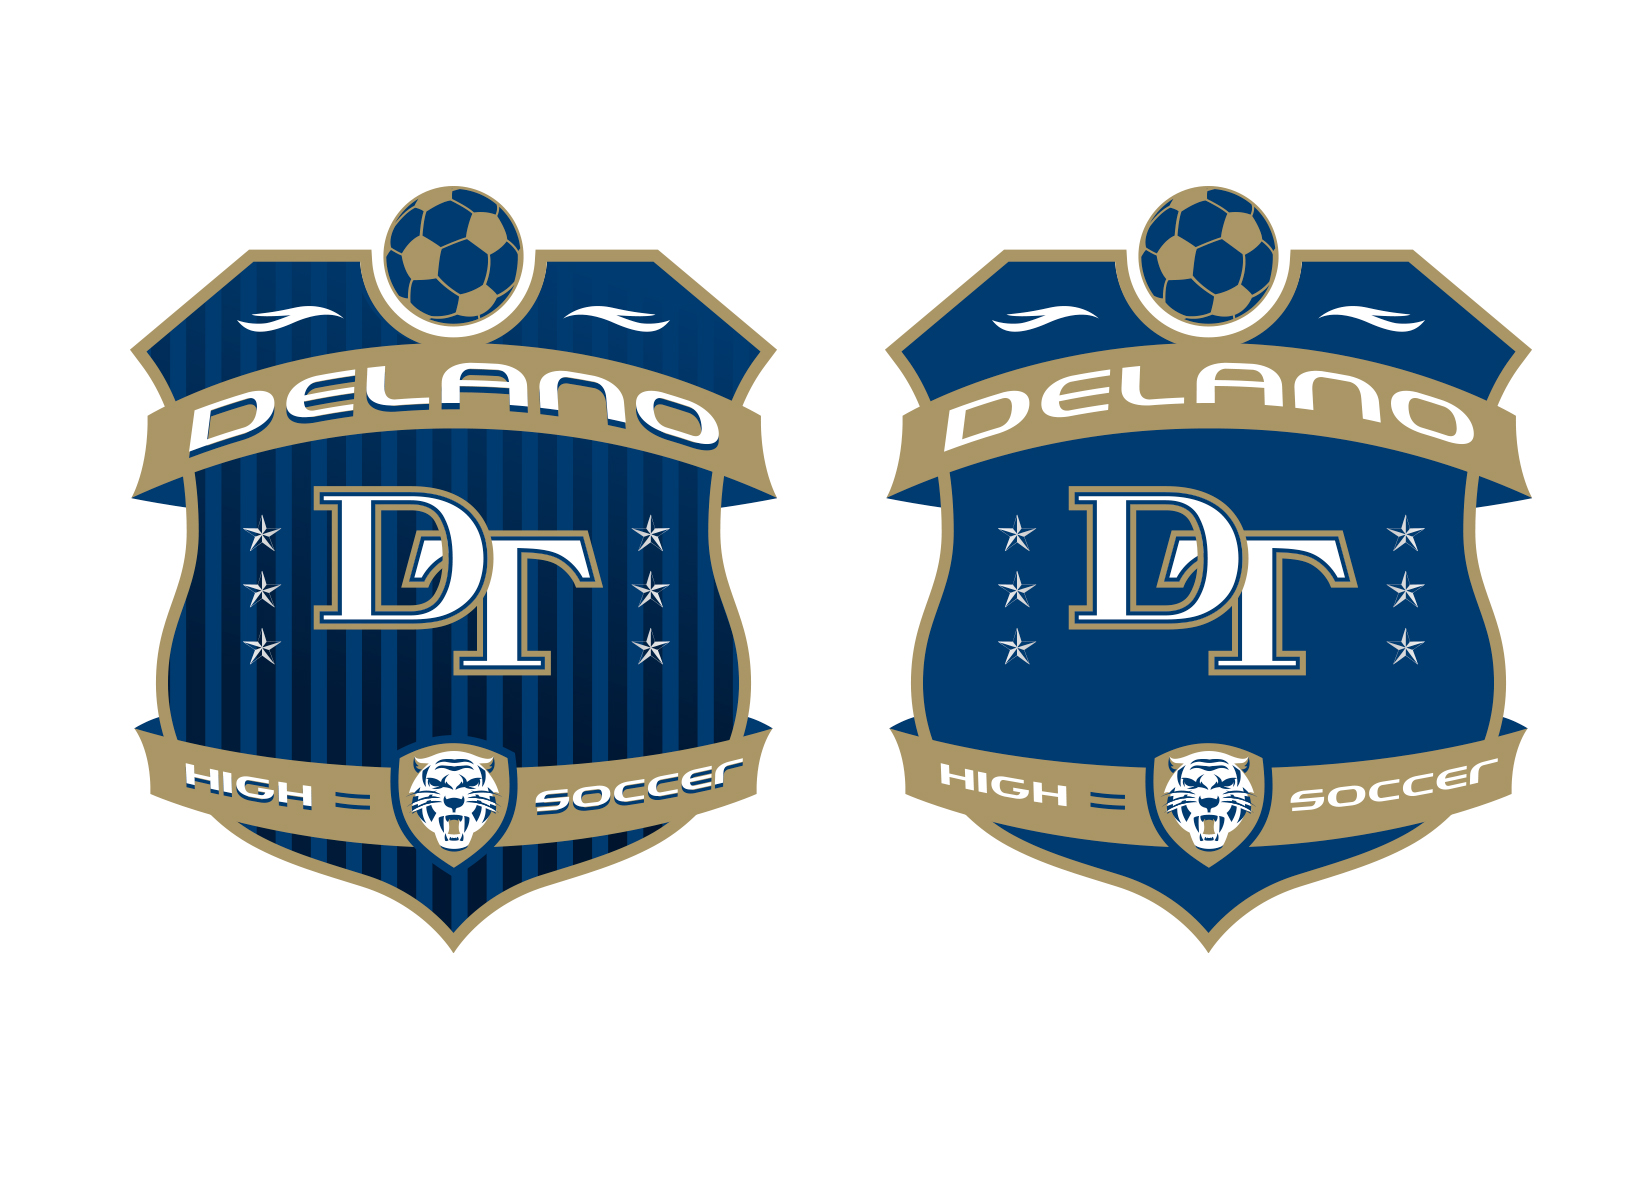 custom-soccer-crest-design-for-delano-high-school-soccer-2.jpg